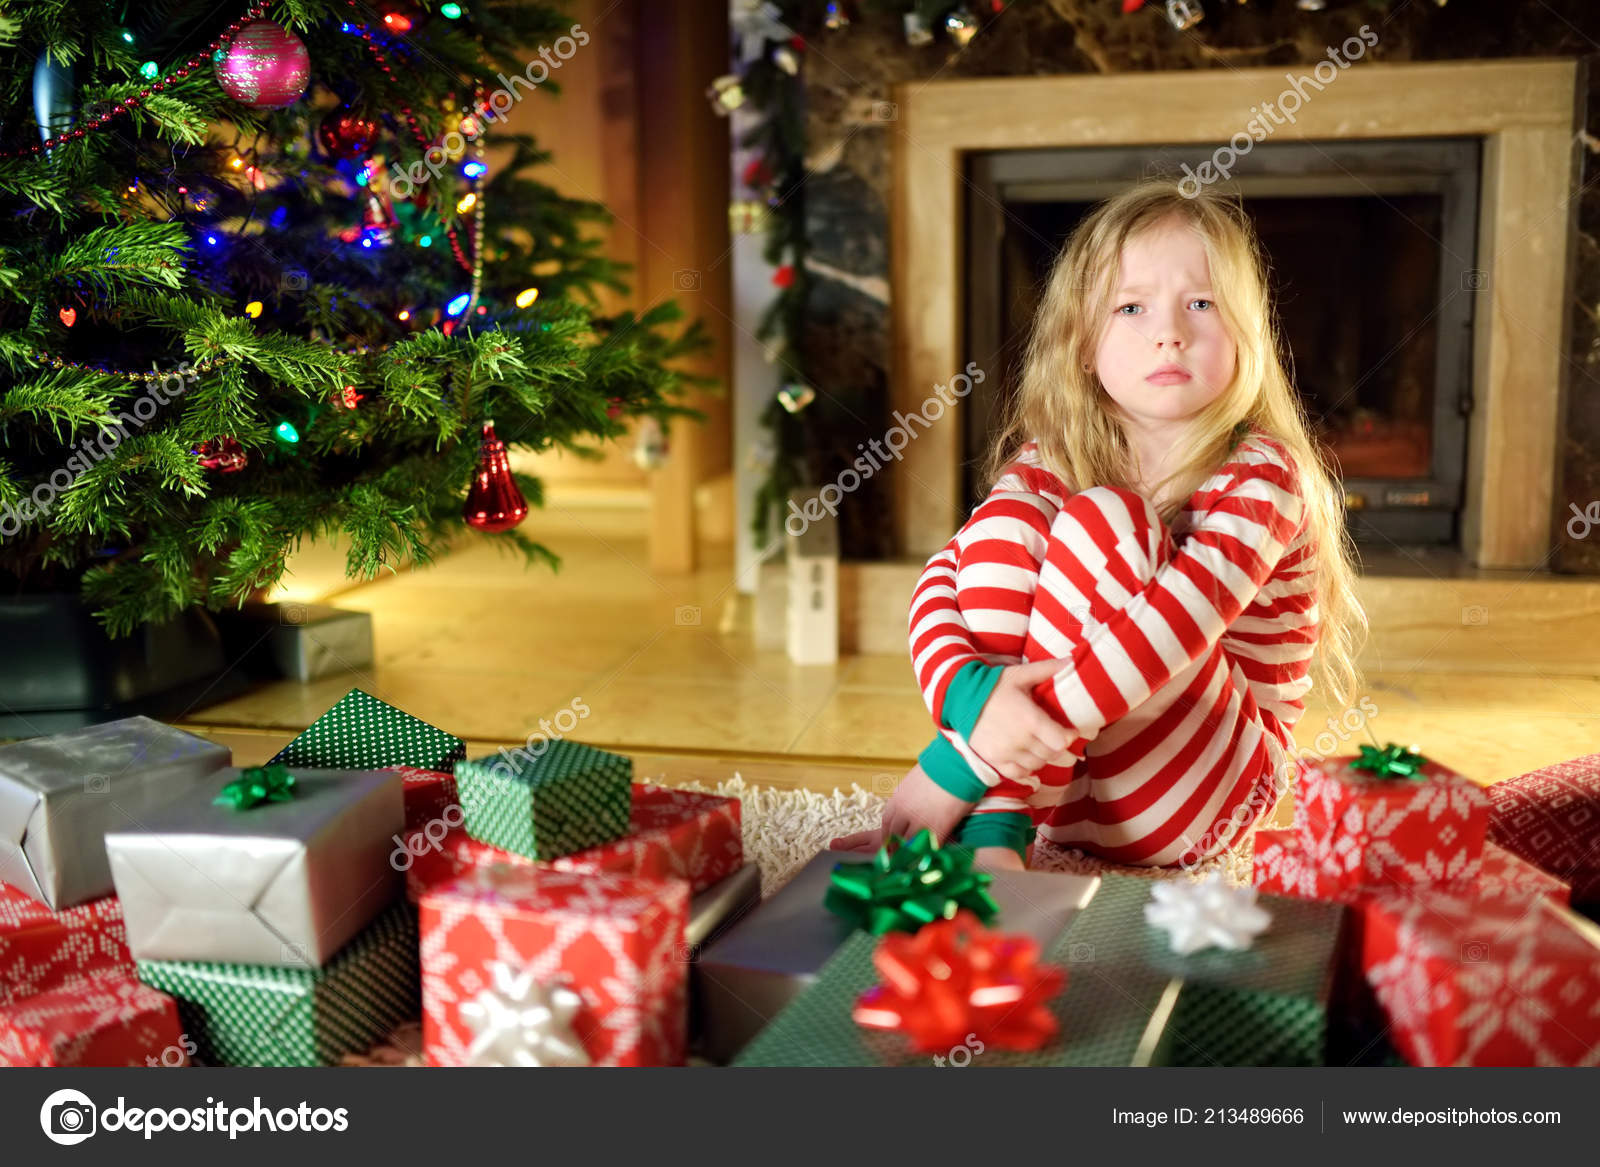 Cute Christmas Gifts For Girlfriend.Cute Little Girl Feeling Unhappy Her Christmas Gifts Child